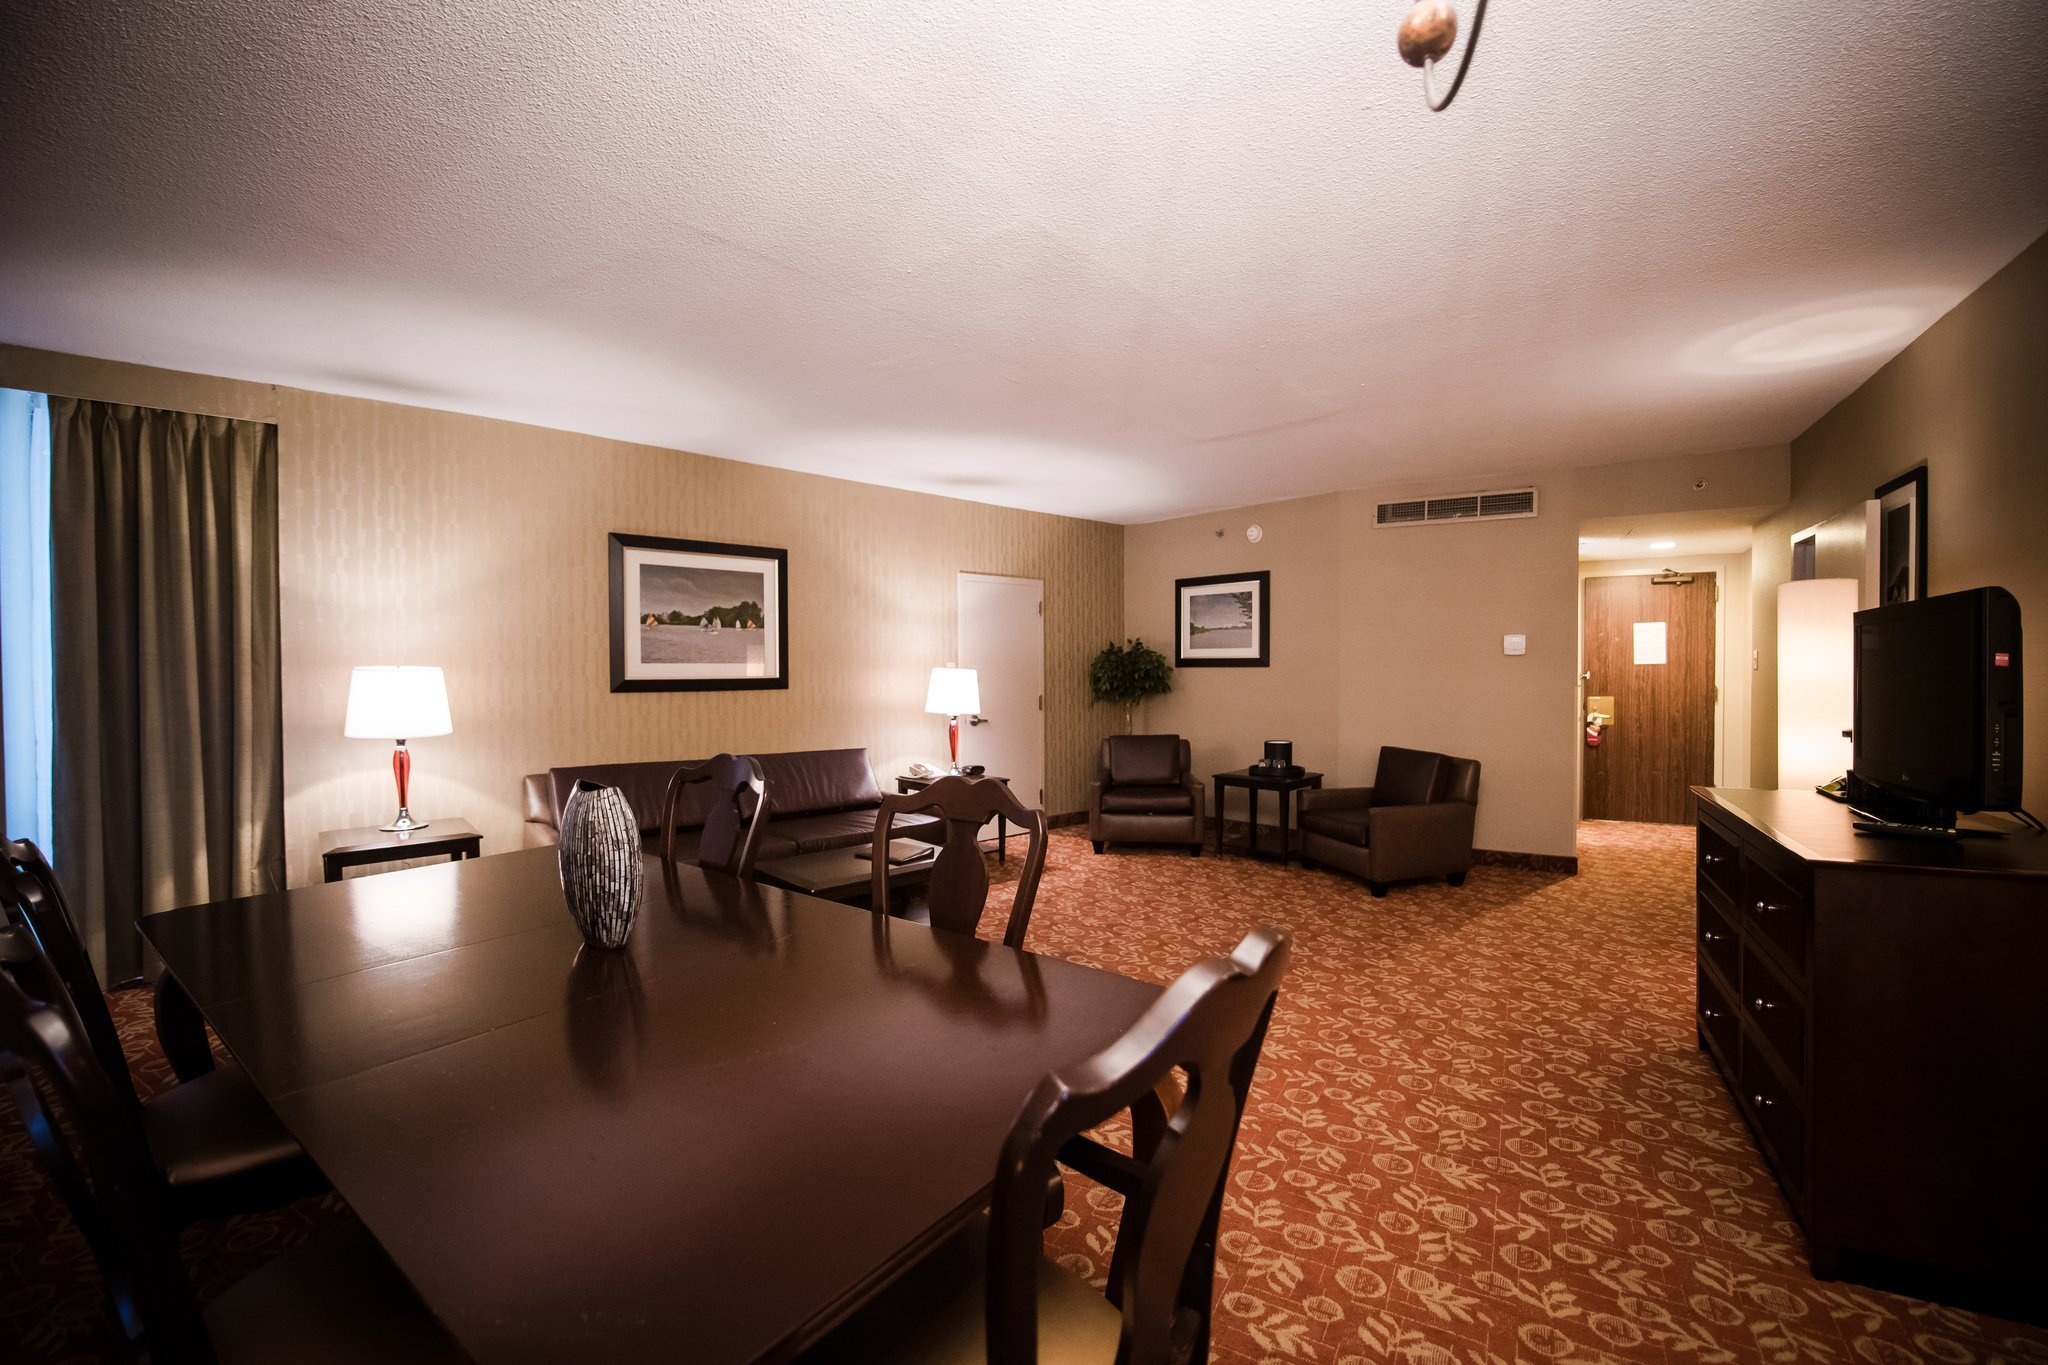 Hotel Crowne Plaza Hotel Philadelphia-Cherry Hill in